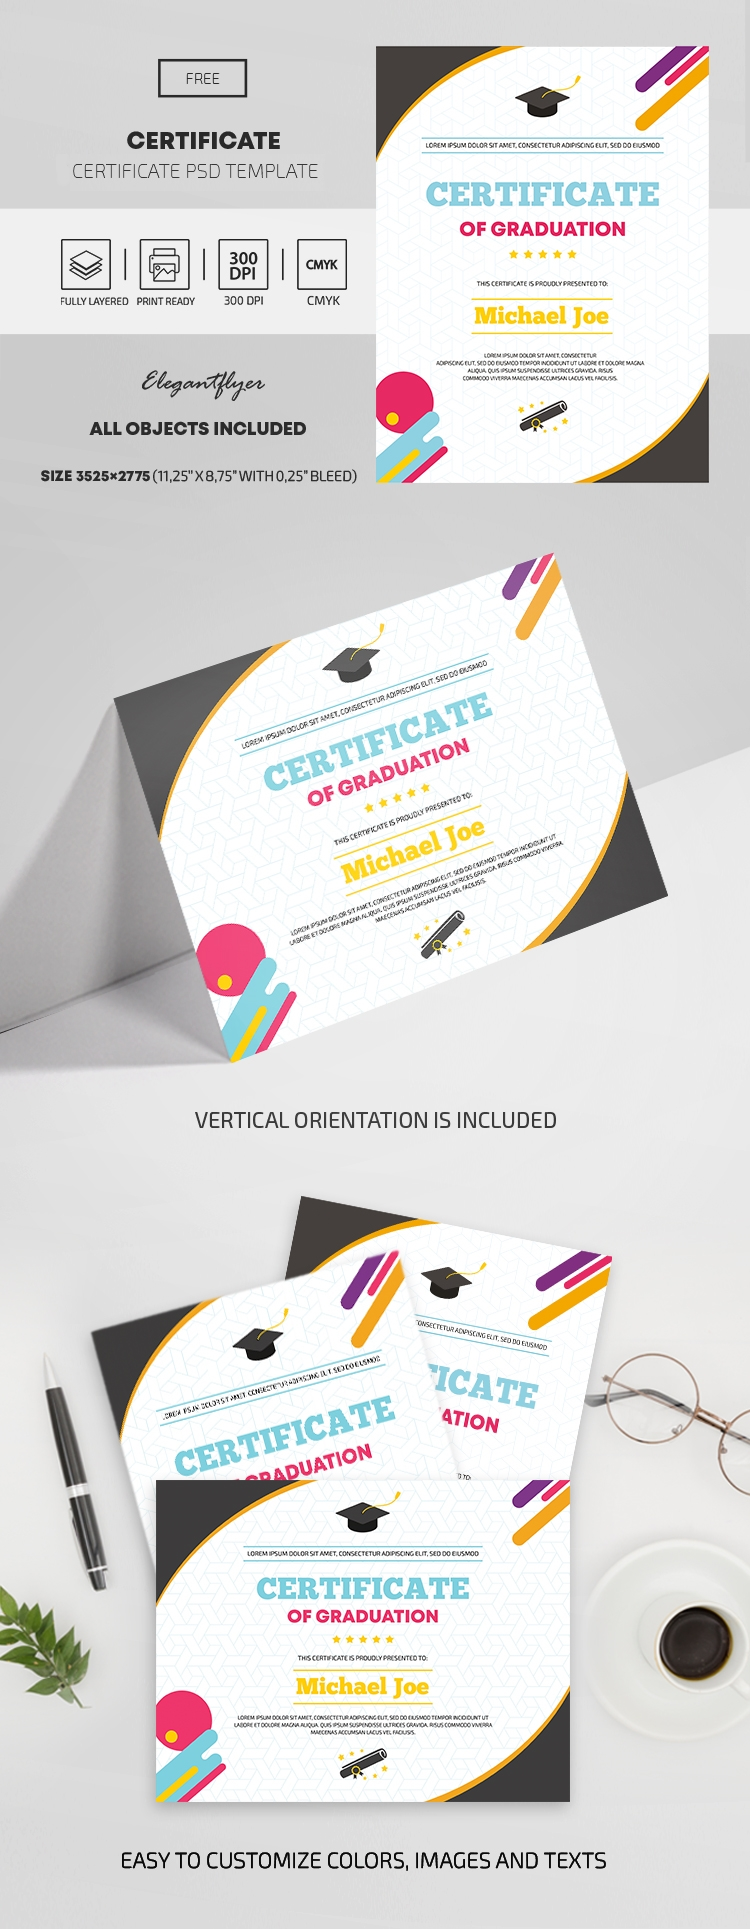 Free Certificate of graduation template in PSD